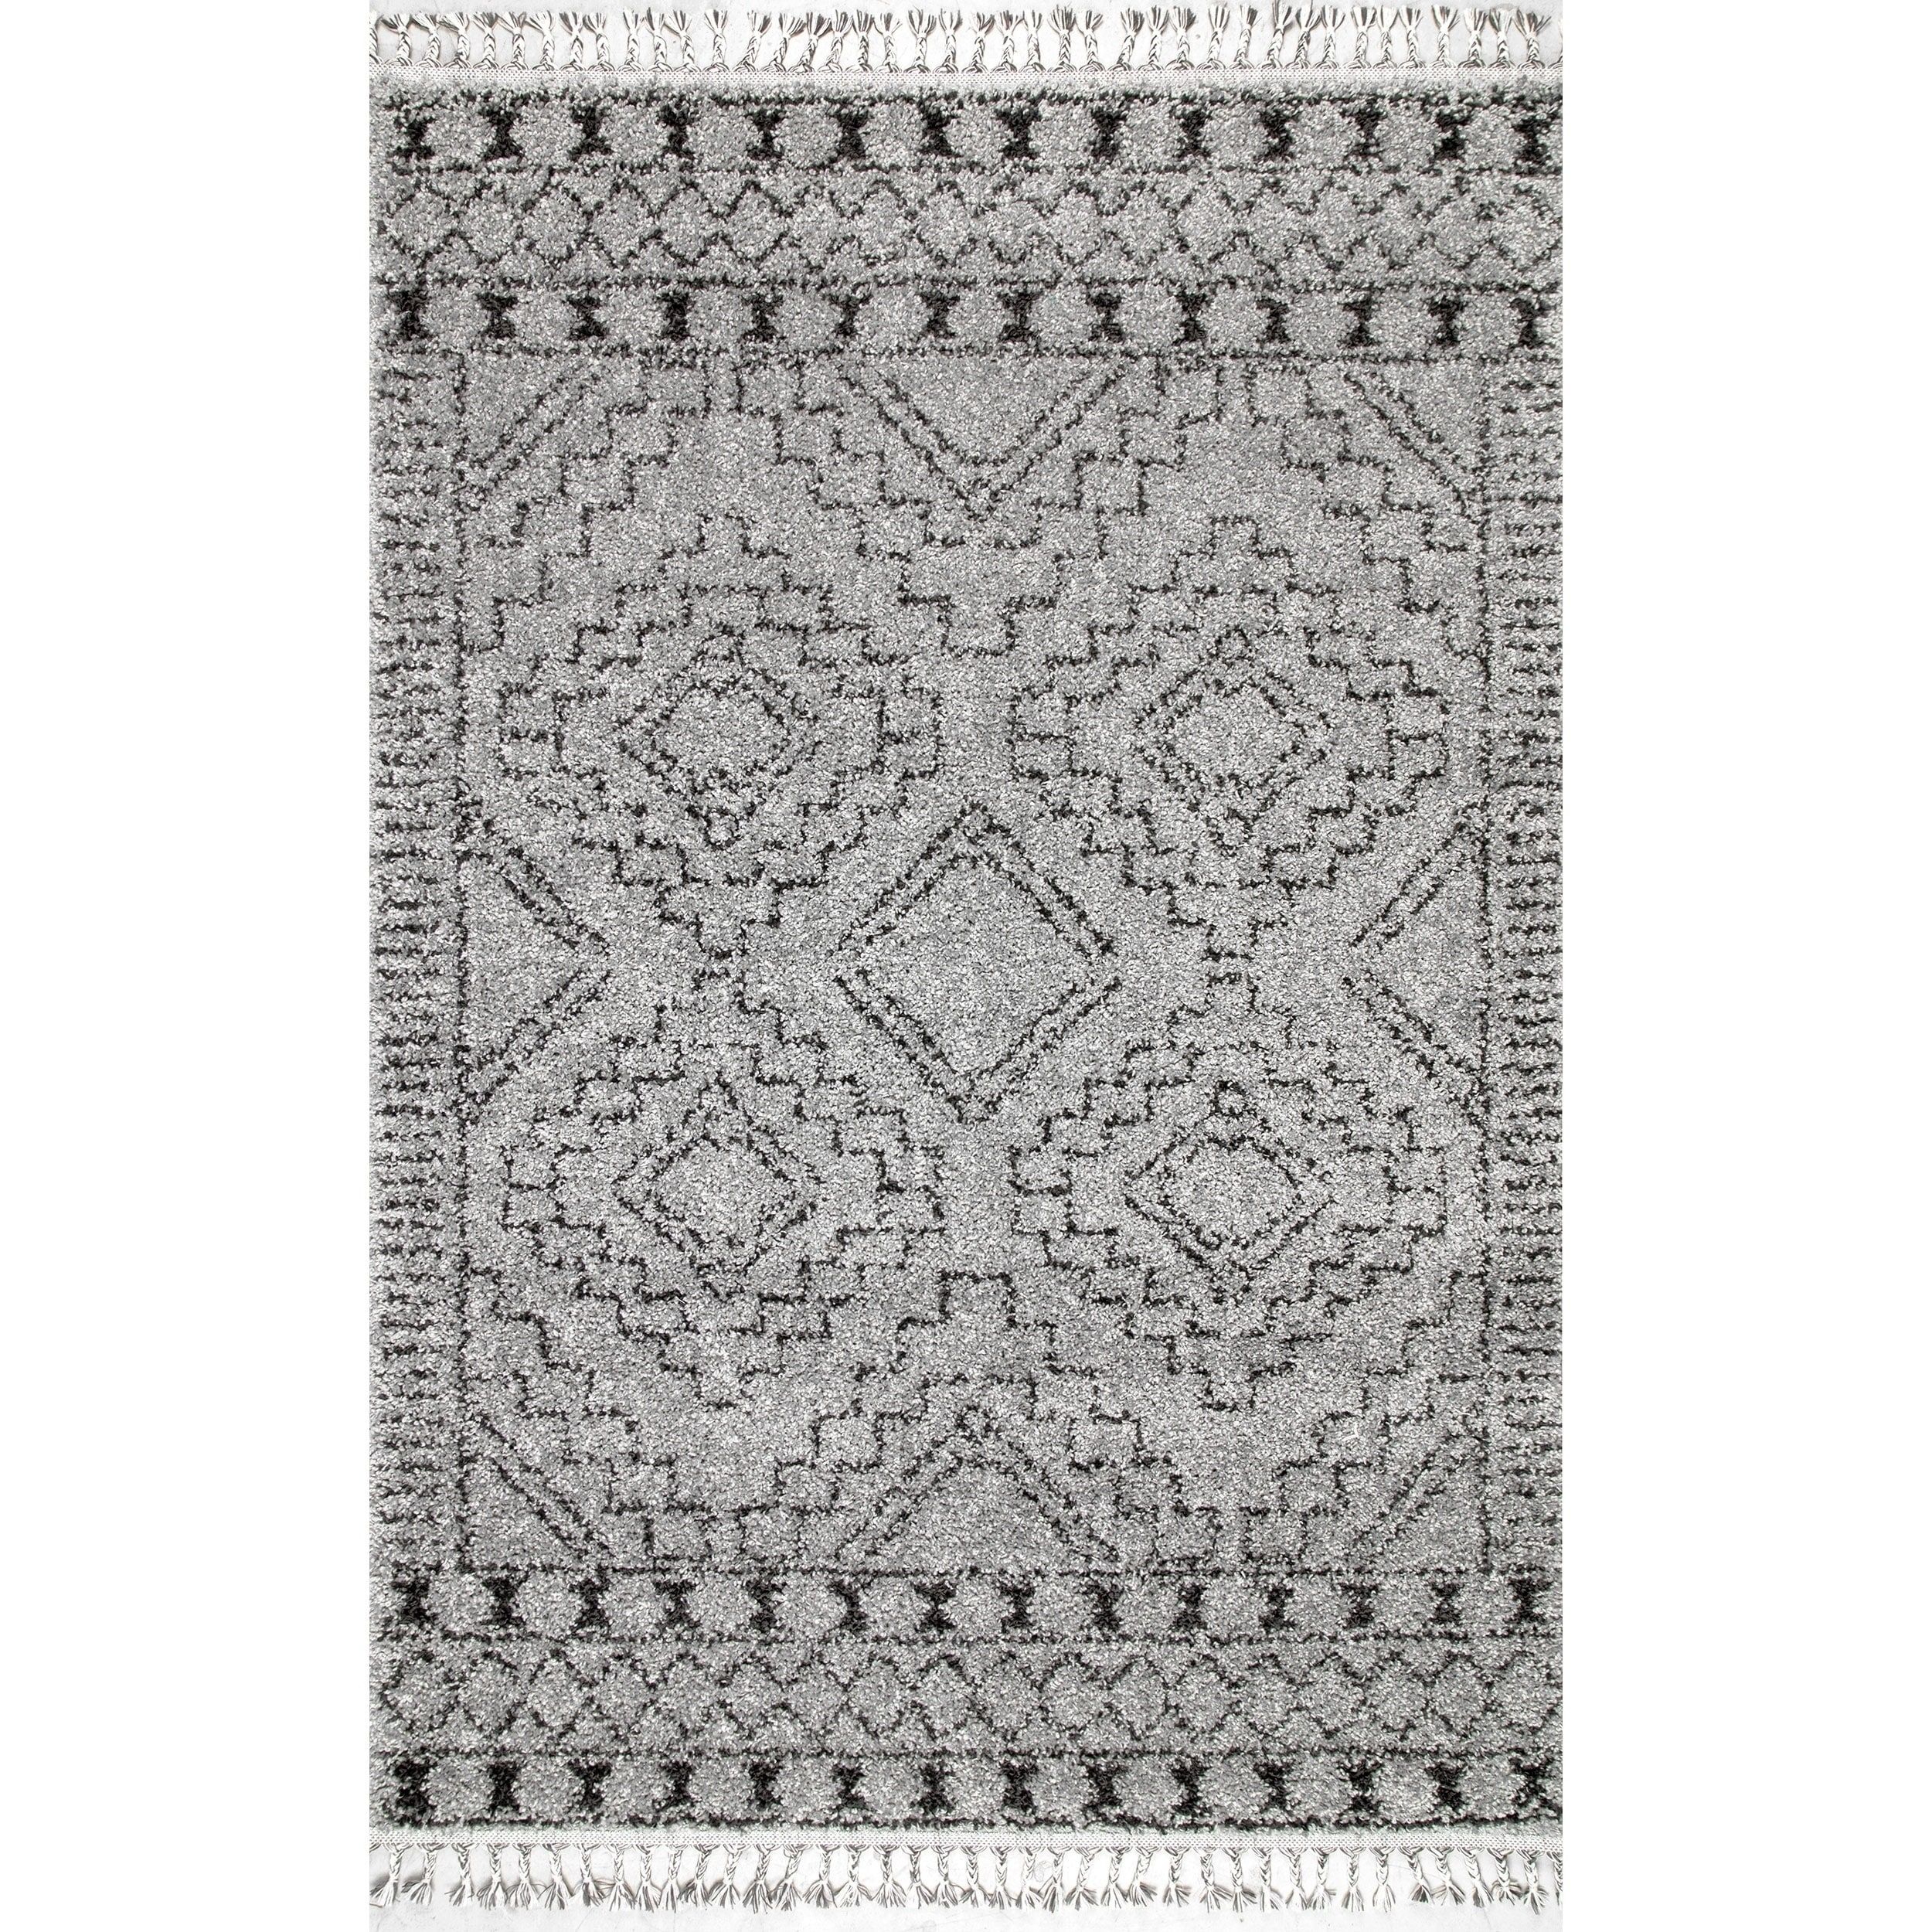 Shop nuloom soft and plush geometric moroccan shag tassel area rug on sale free shipping today overstock 20303547